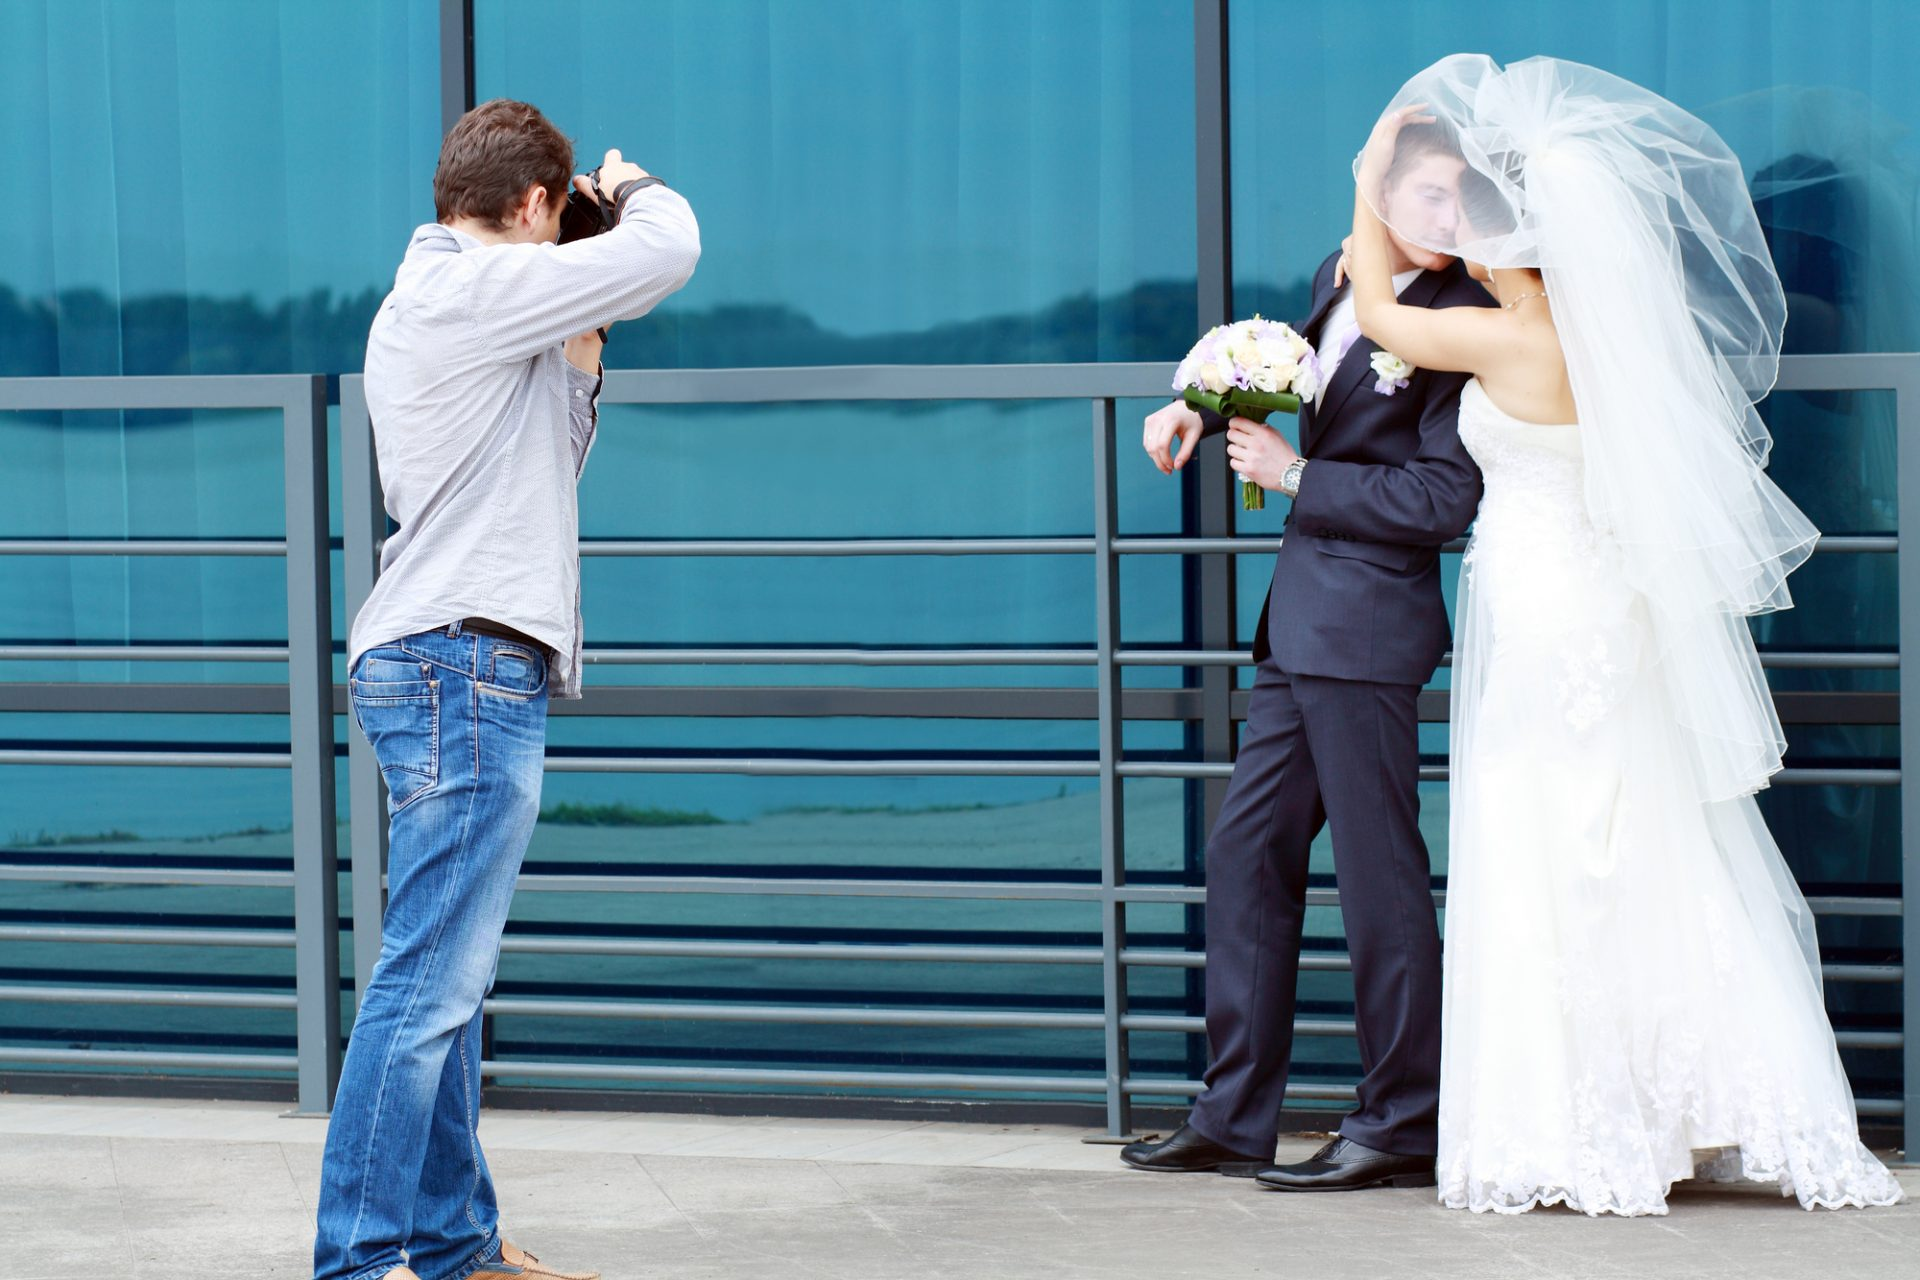 Photographer taking a picture of a wedded couple.